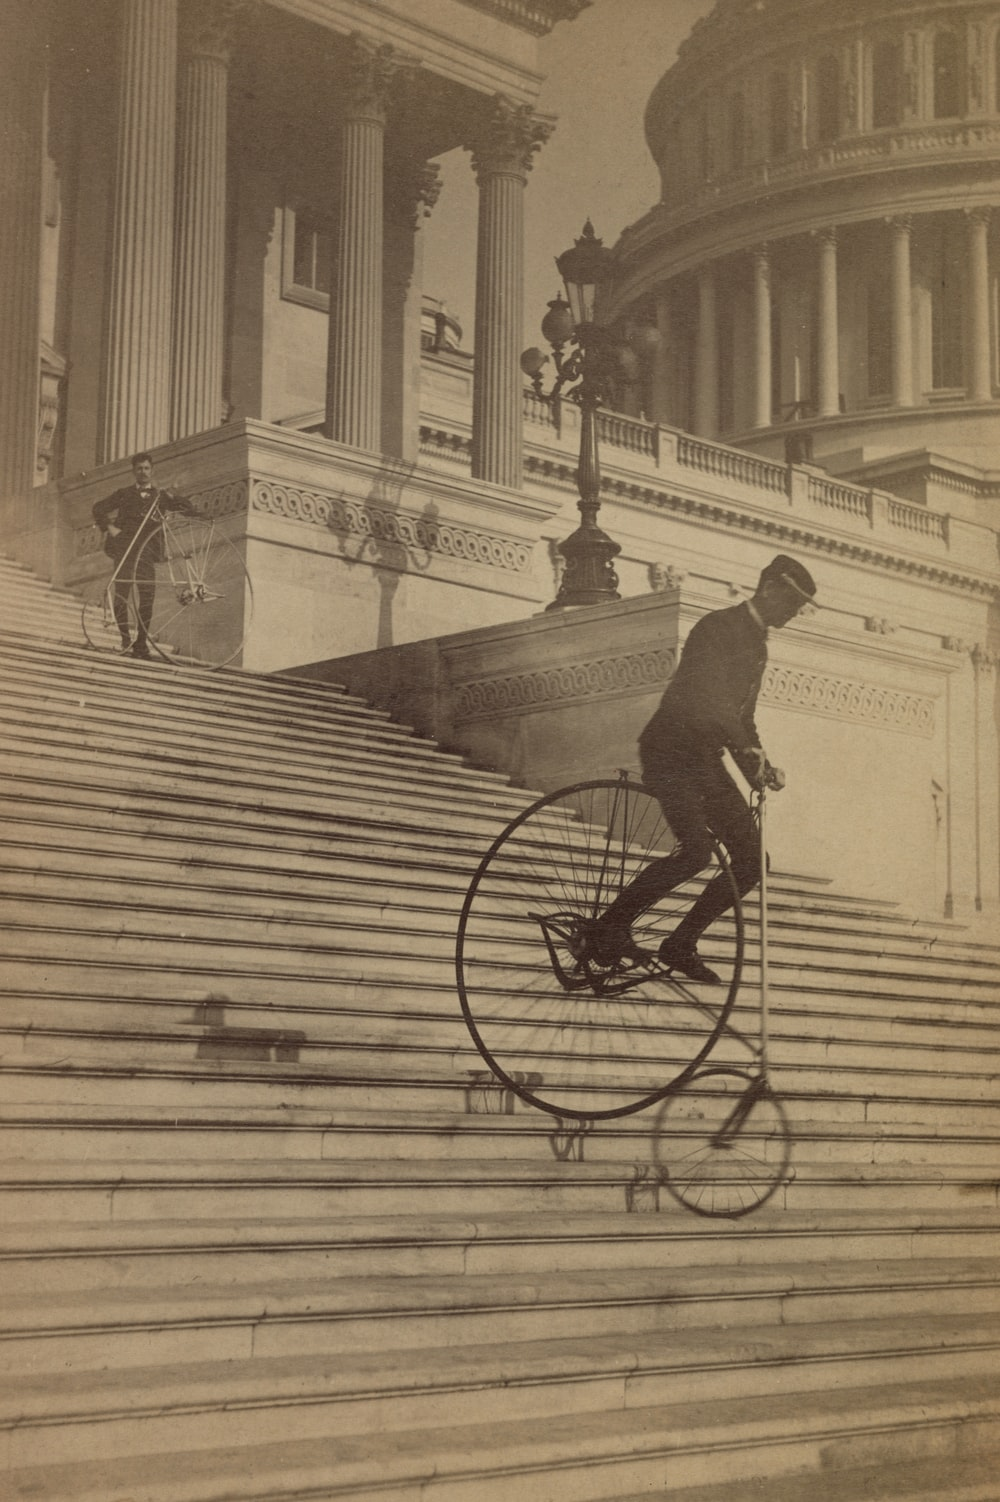 Man riding a bicycle down the steps of the U.S. Capitol